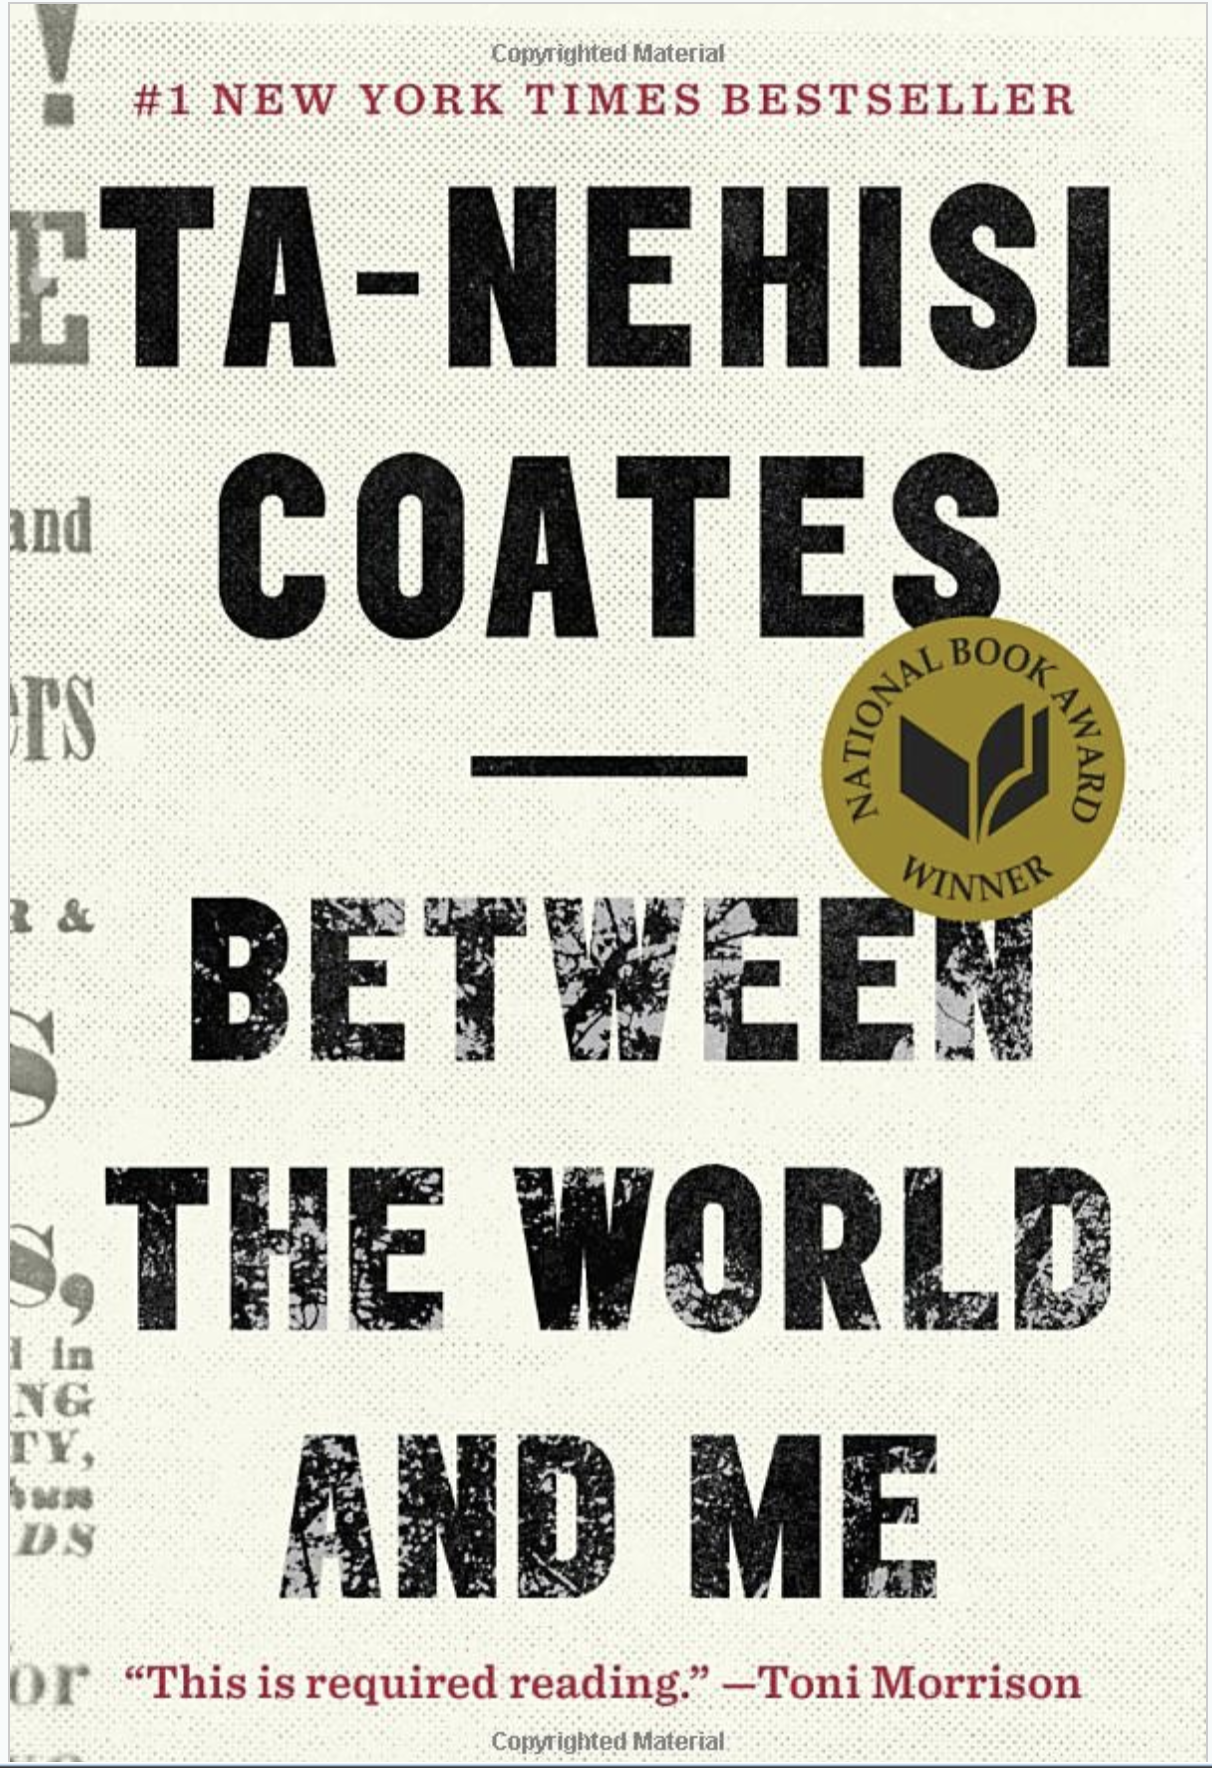 Between the World and Me by Ta-nehisi Coates